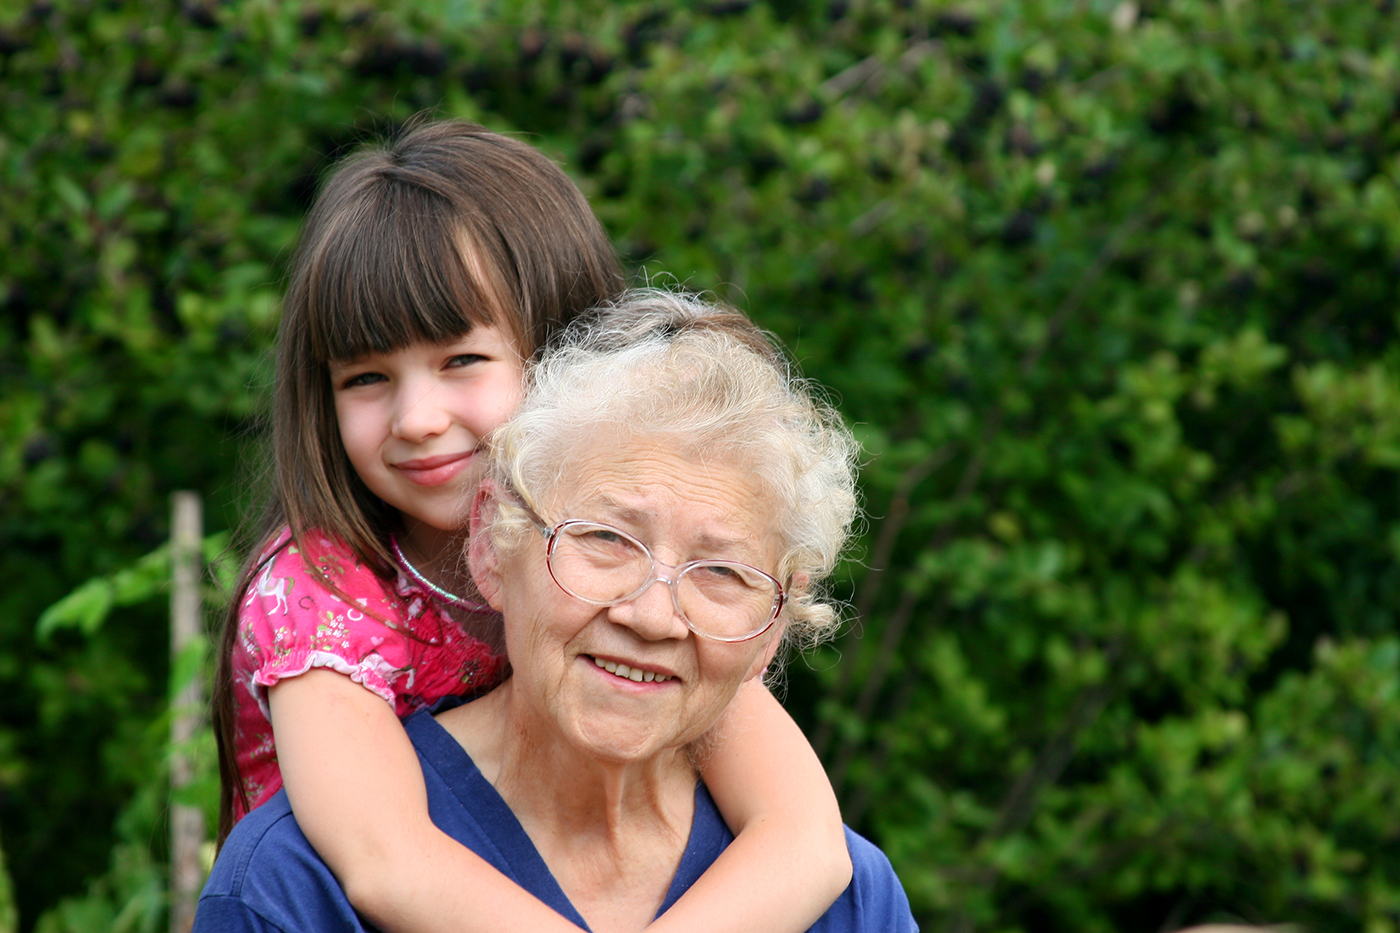 Don't Just Tell Grandparents You Care, Fight for Their